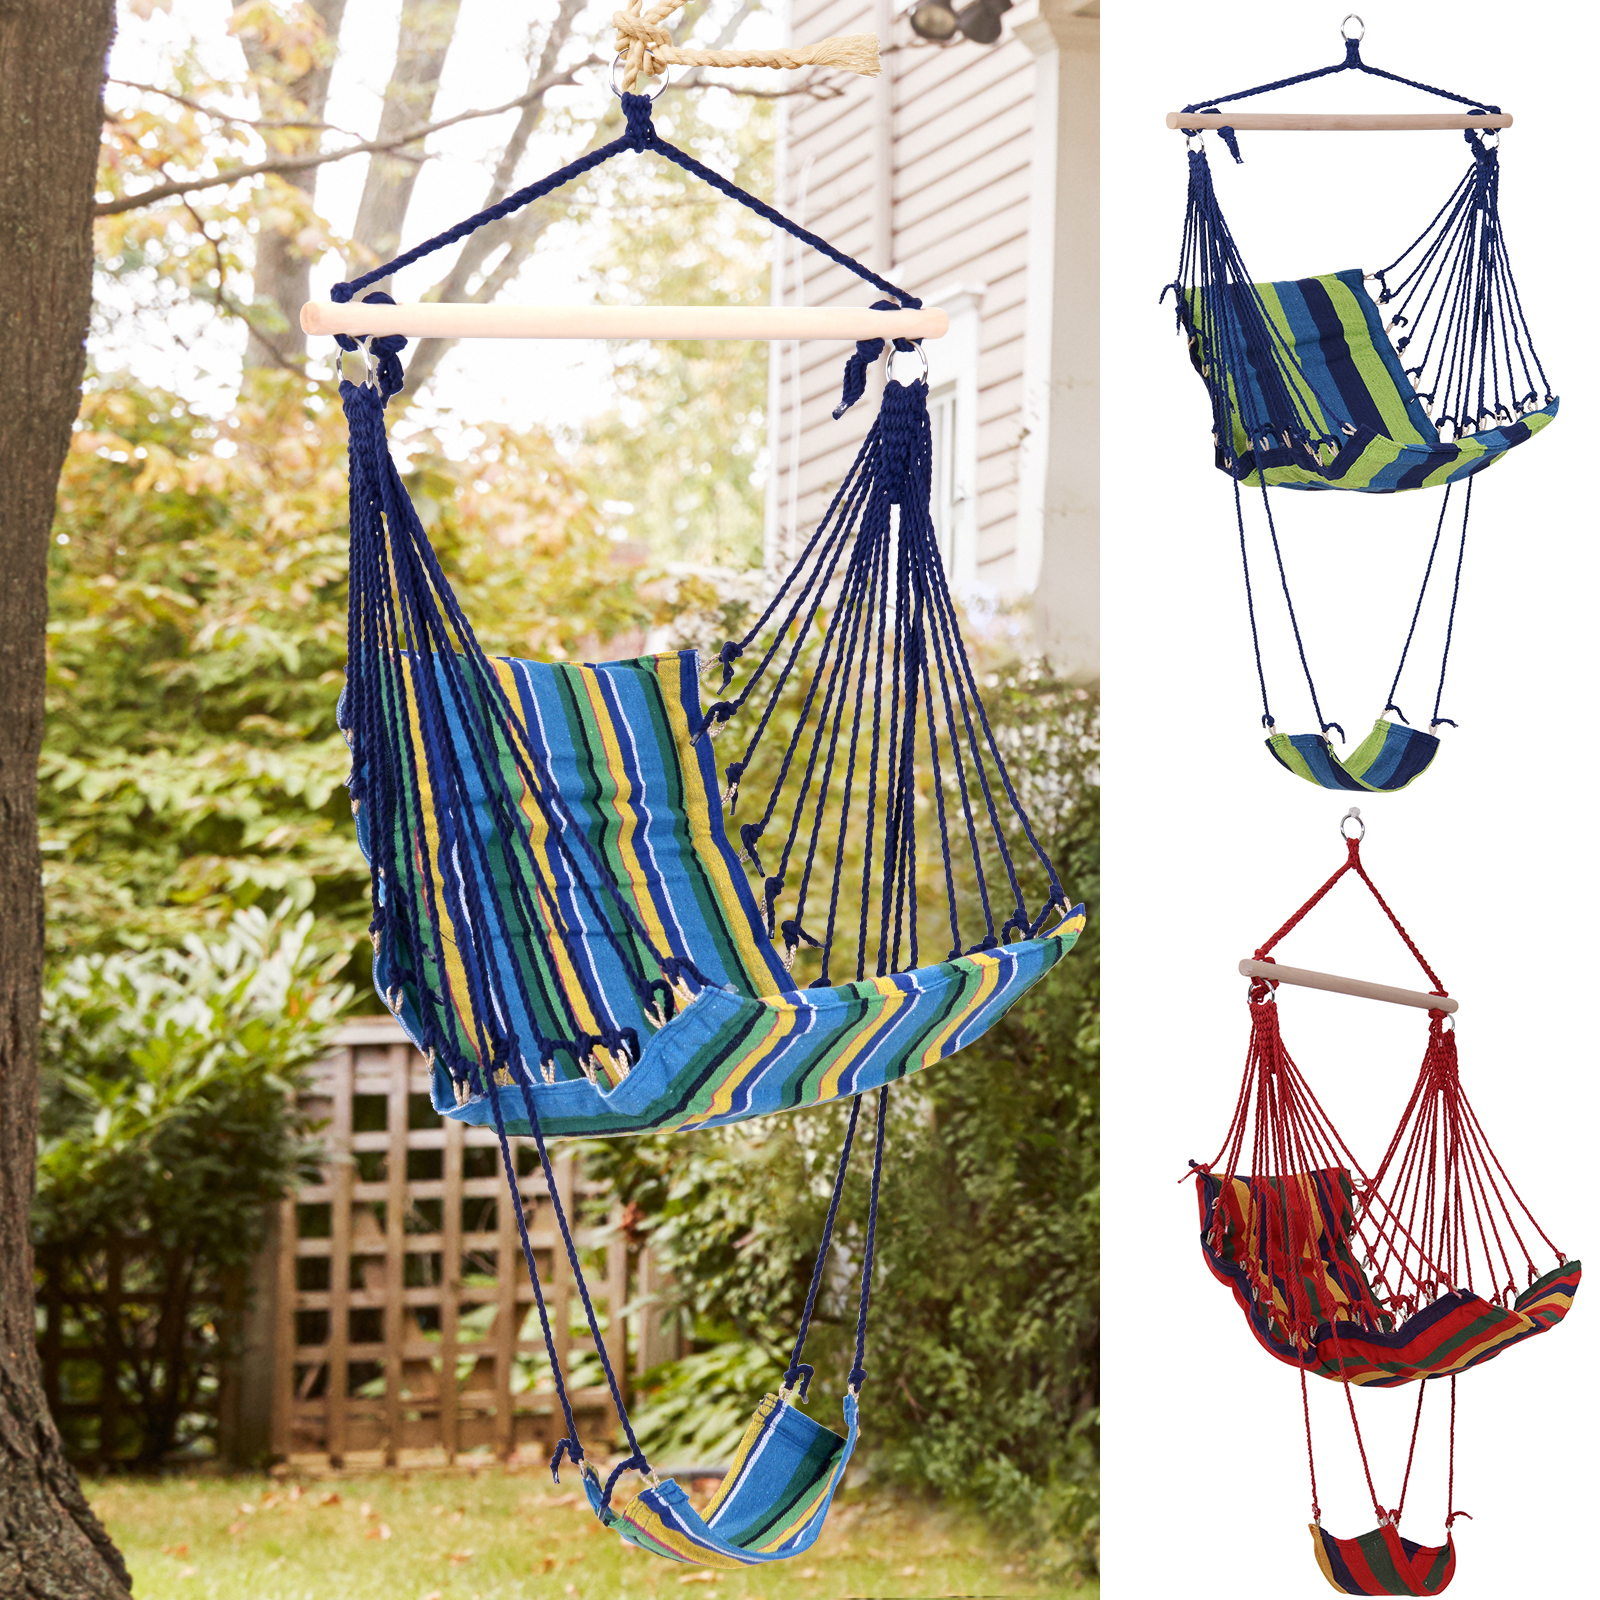 Details About Outsunny Portable Padded Wooden Hanging Hammock Swing Chair  Seat Indoor Outdoor